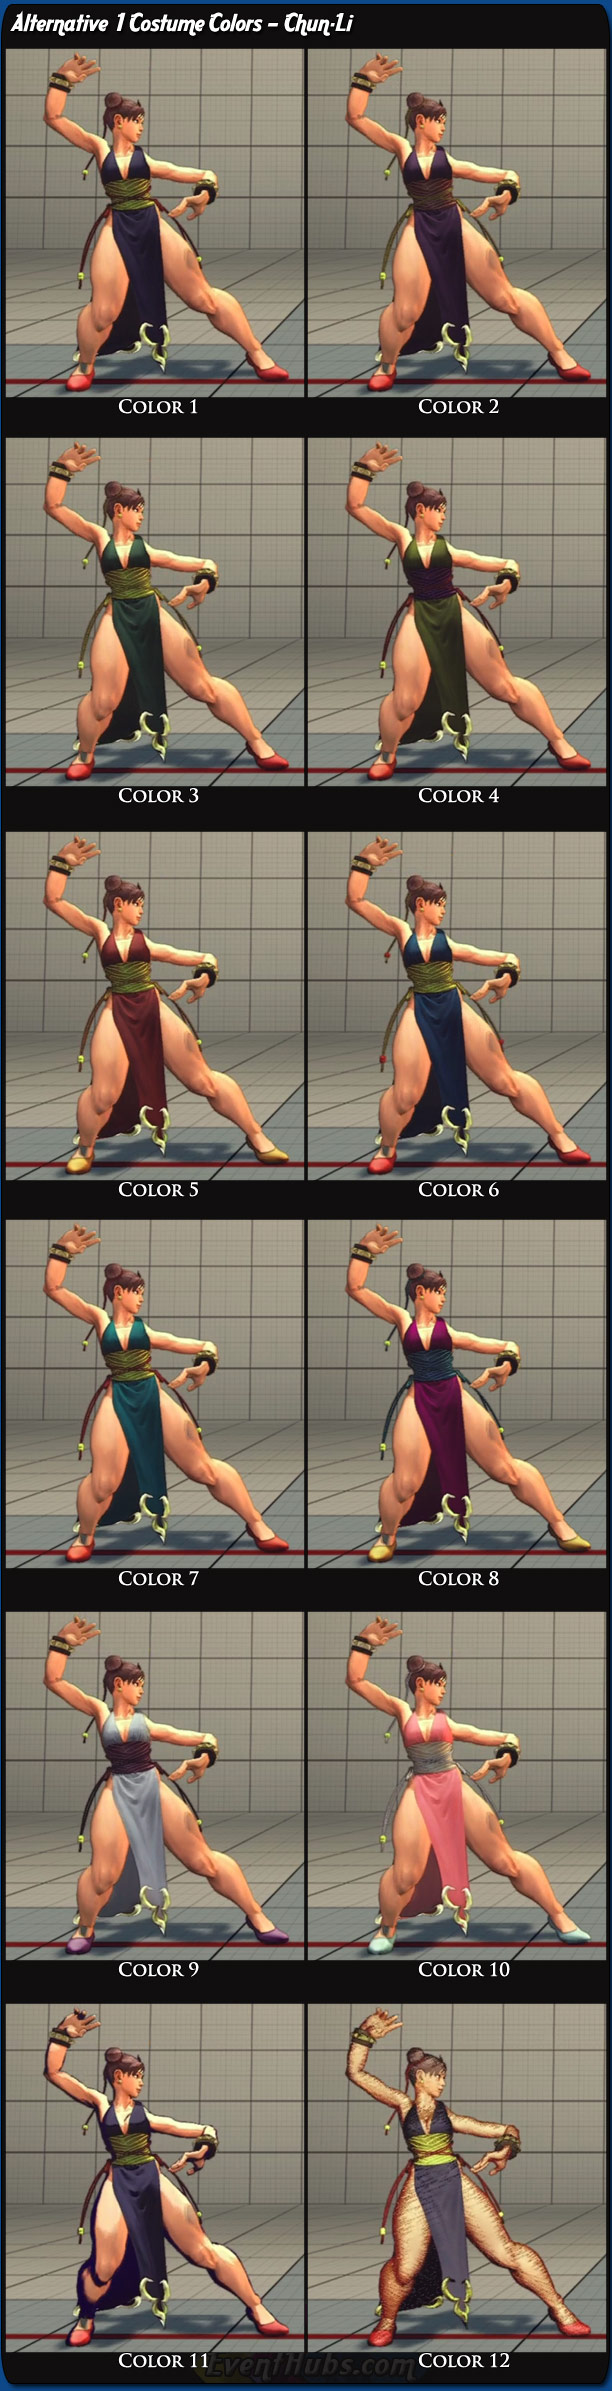 Costume And Alternative Outfit Colors For Chun Li In Super Street